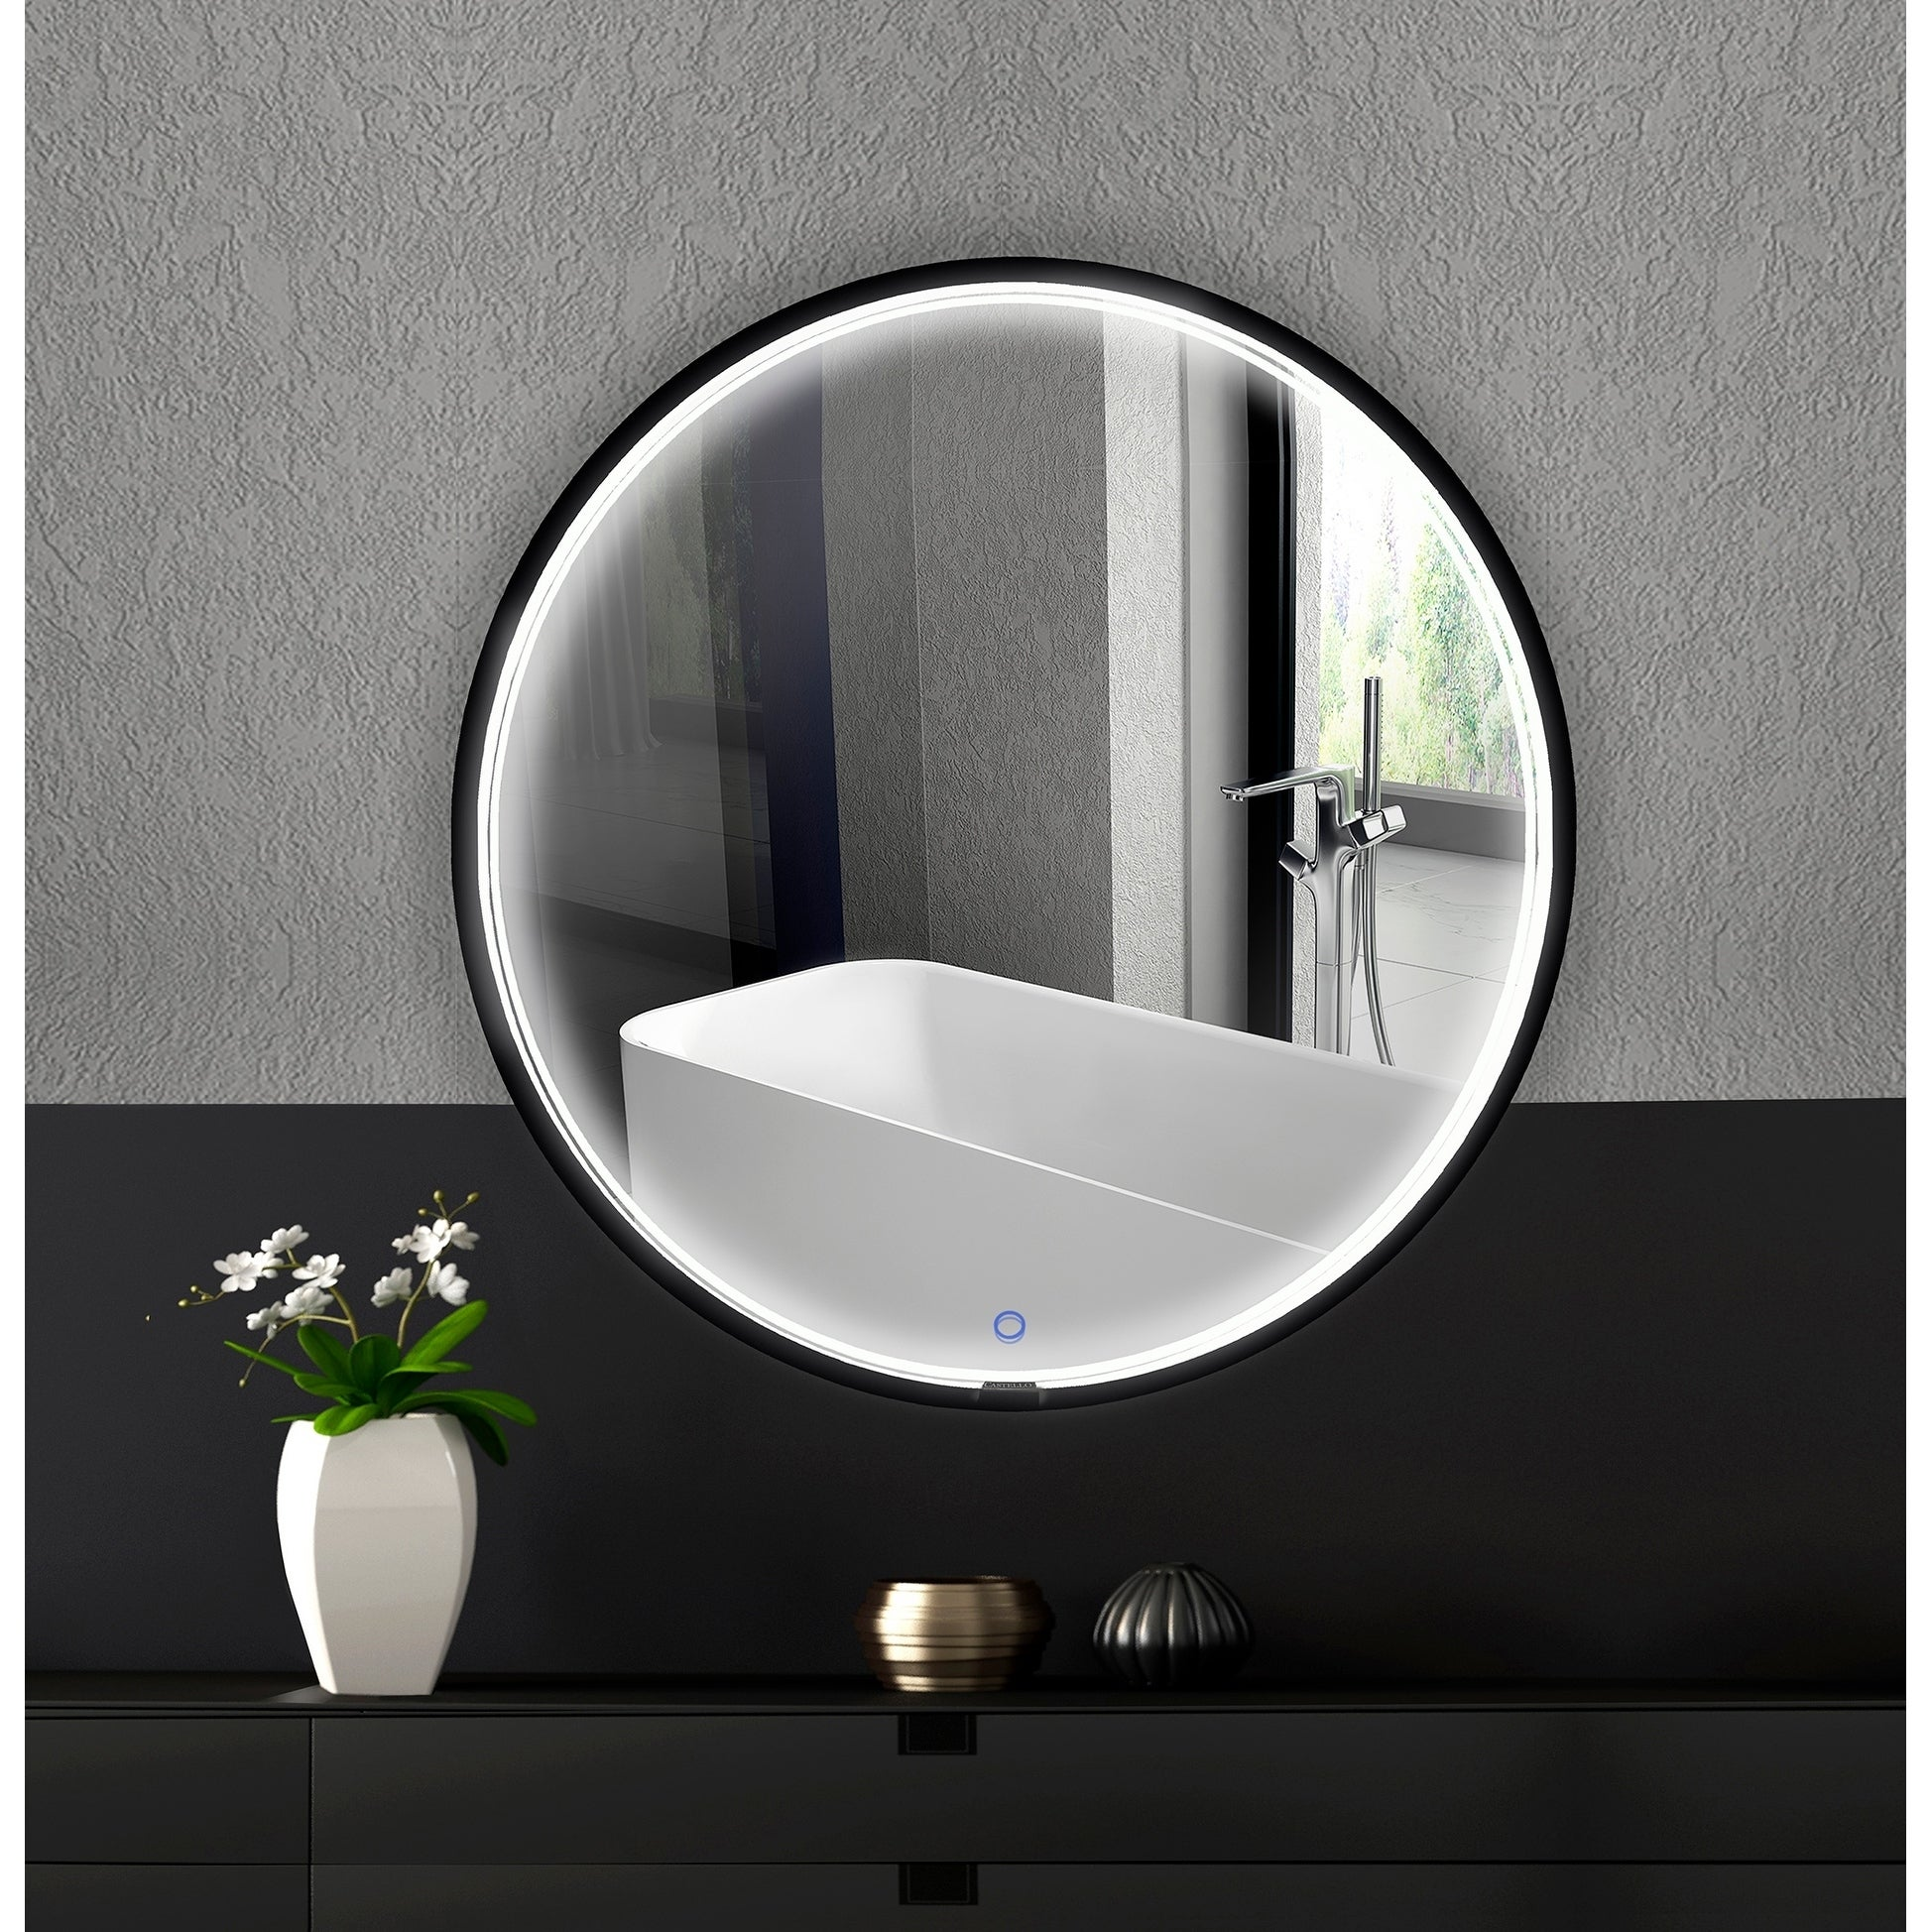 Lucy 36 X 36 Round Black Framed Accent Mirror W Led Lights 36 X 36 Overstock 30951314